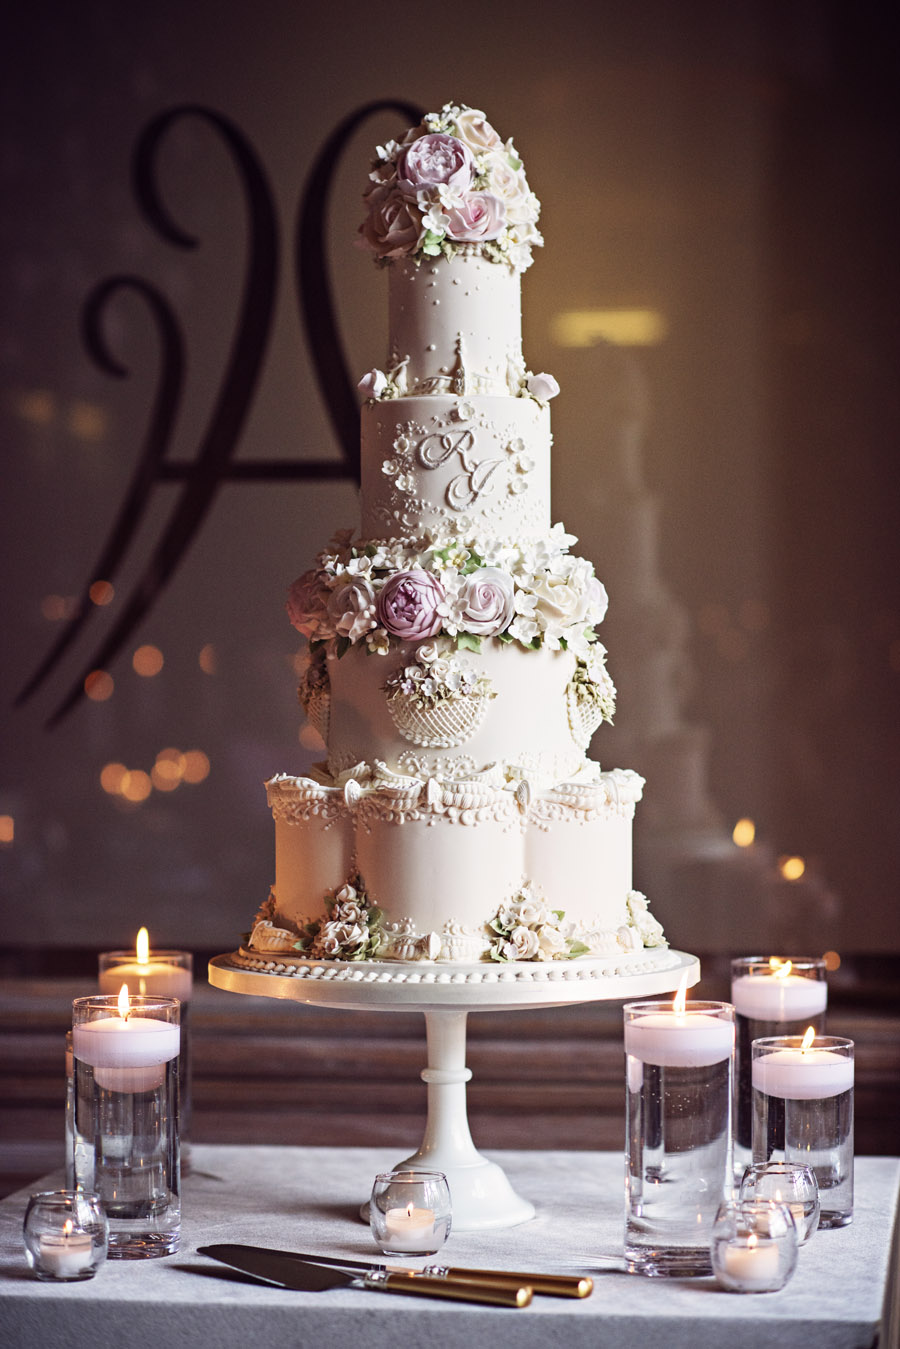 Beautiful wedding cakes by The Frostery - trends and ideas for 2019 (23)